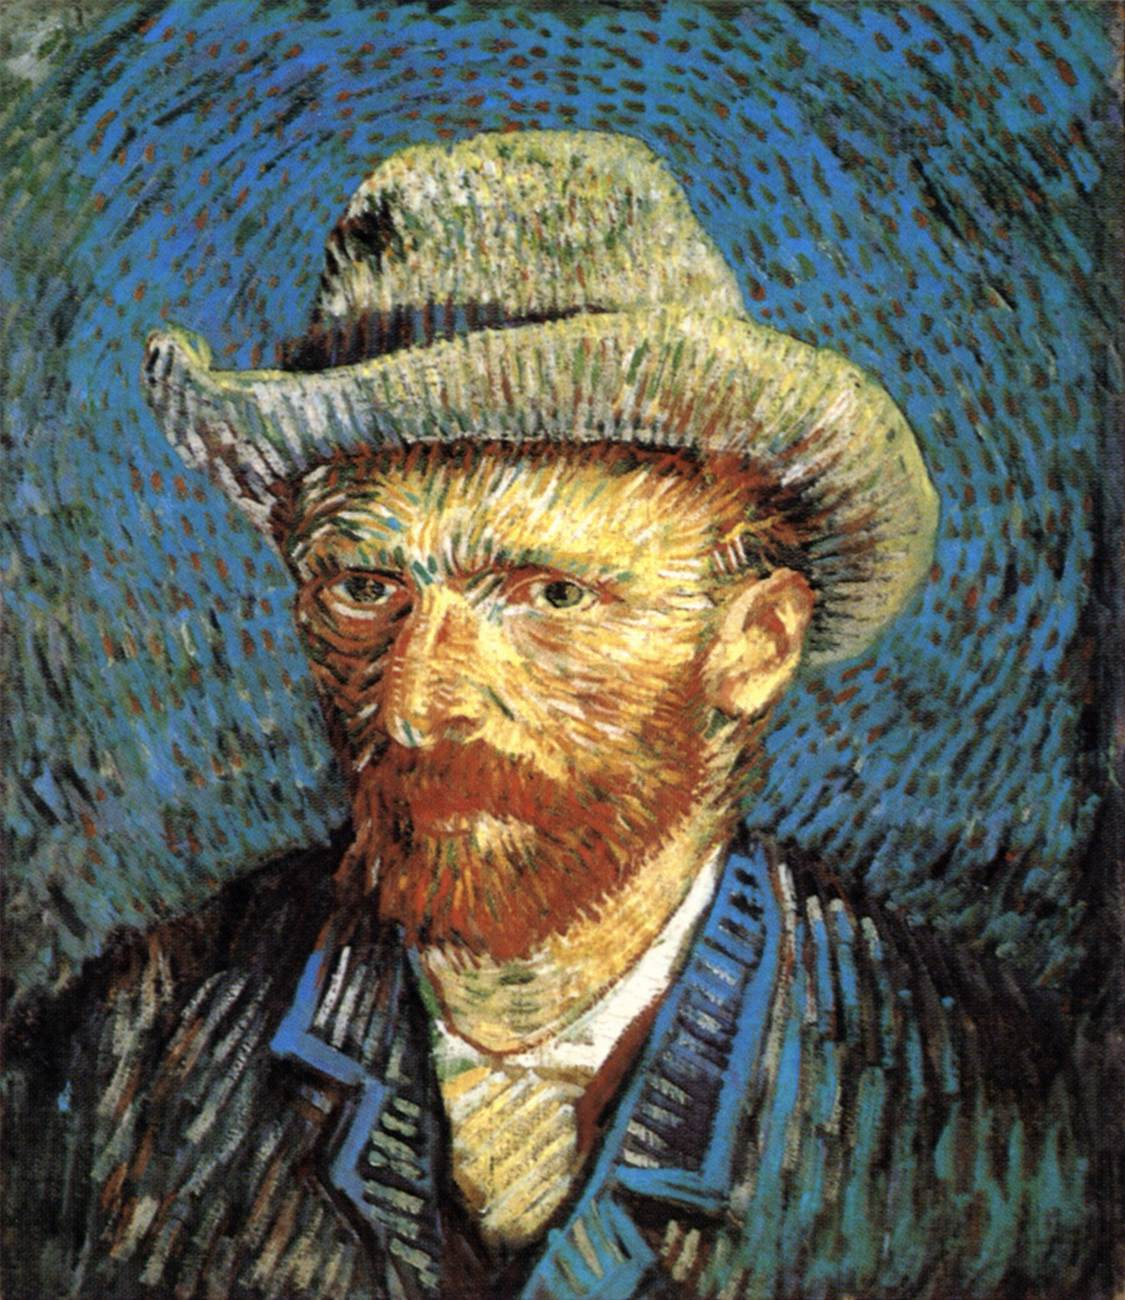 ad10d4b7b8fef Self-Portrait with Grey Felt Hat Winter 1887/88, Paris Oil on canvas, 44 x  38 cm. Rijksmuseum Vincent van Gogh, Amsterdam